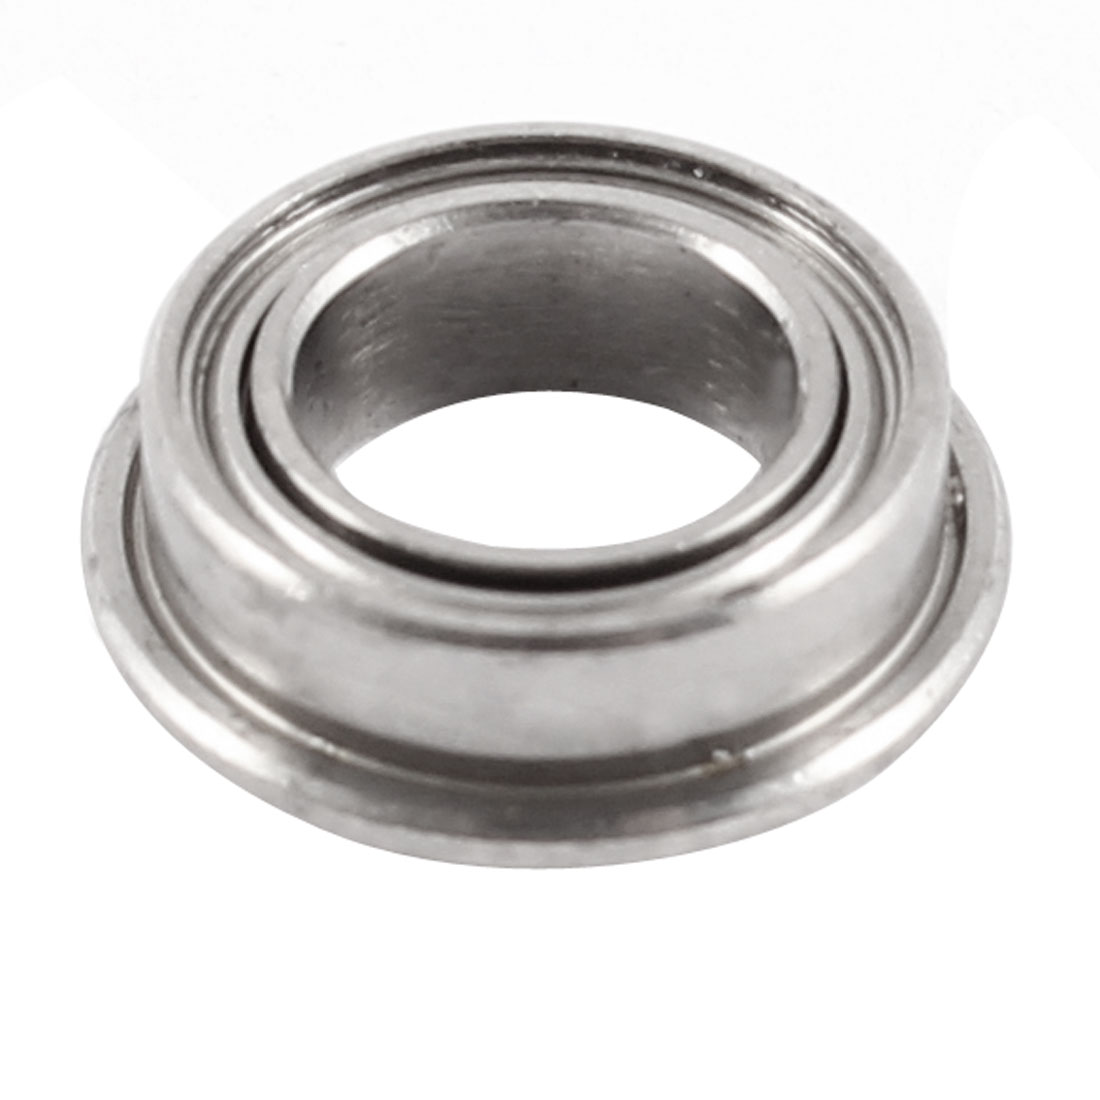 8mm-x-5mm-x-2-5mm-Radial-Shielded-Deep-Groove-Flanged-Ball-Bearing